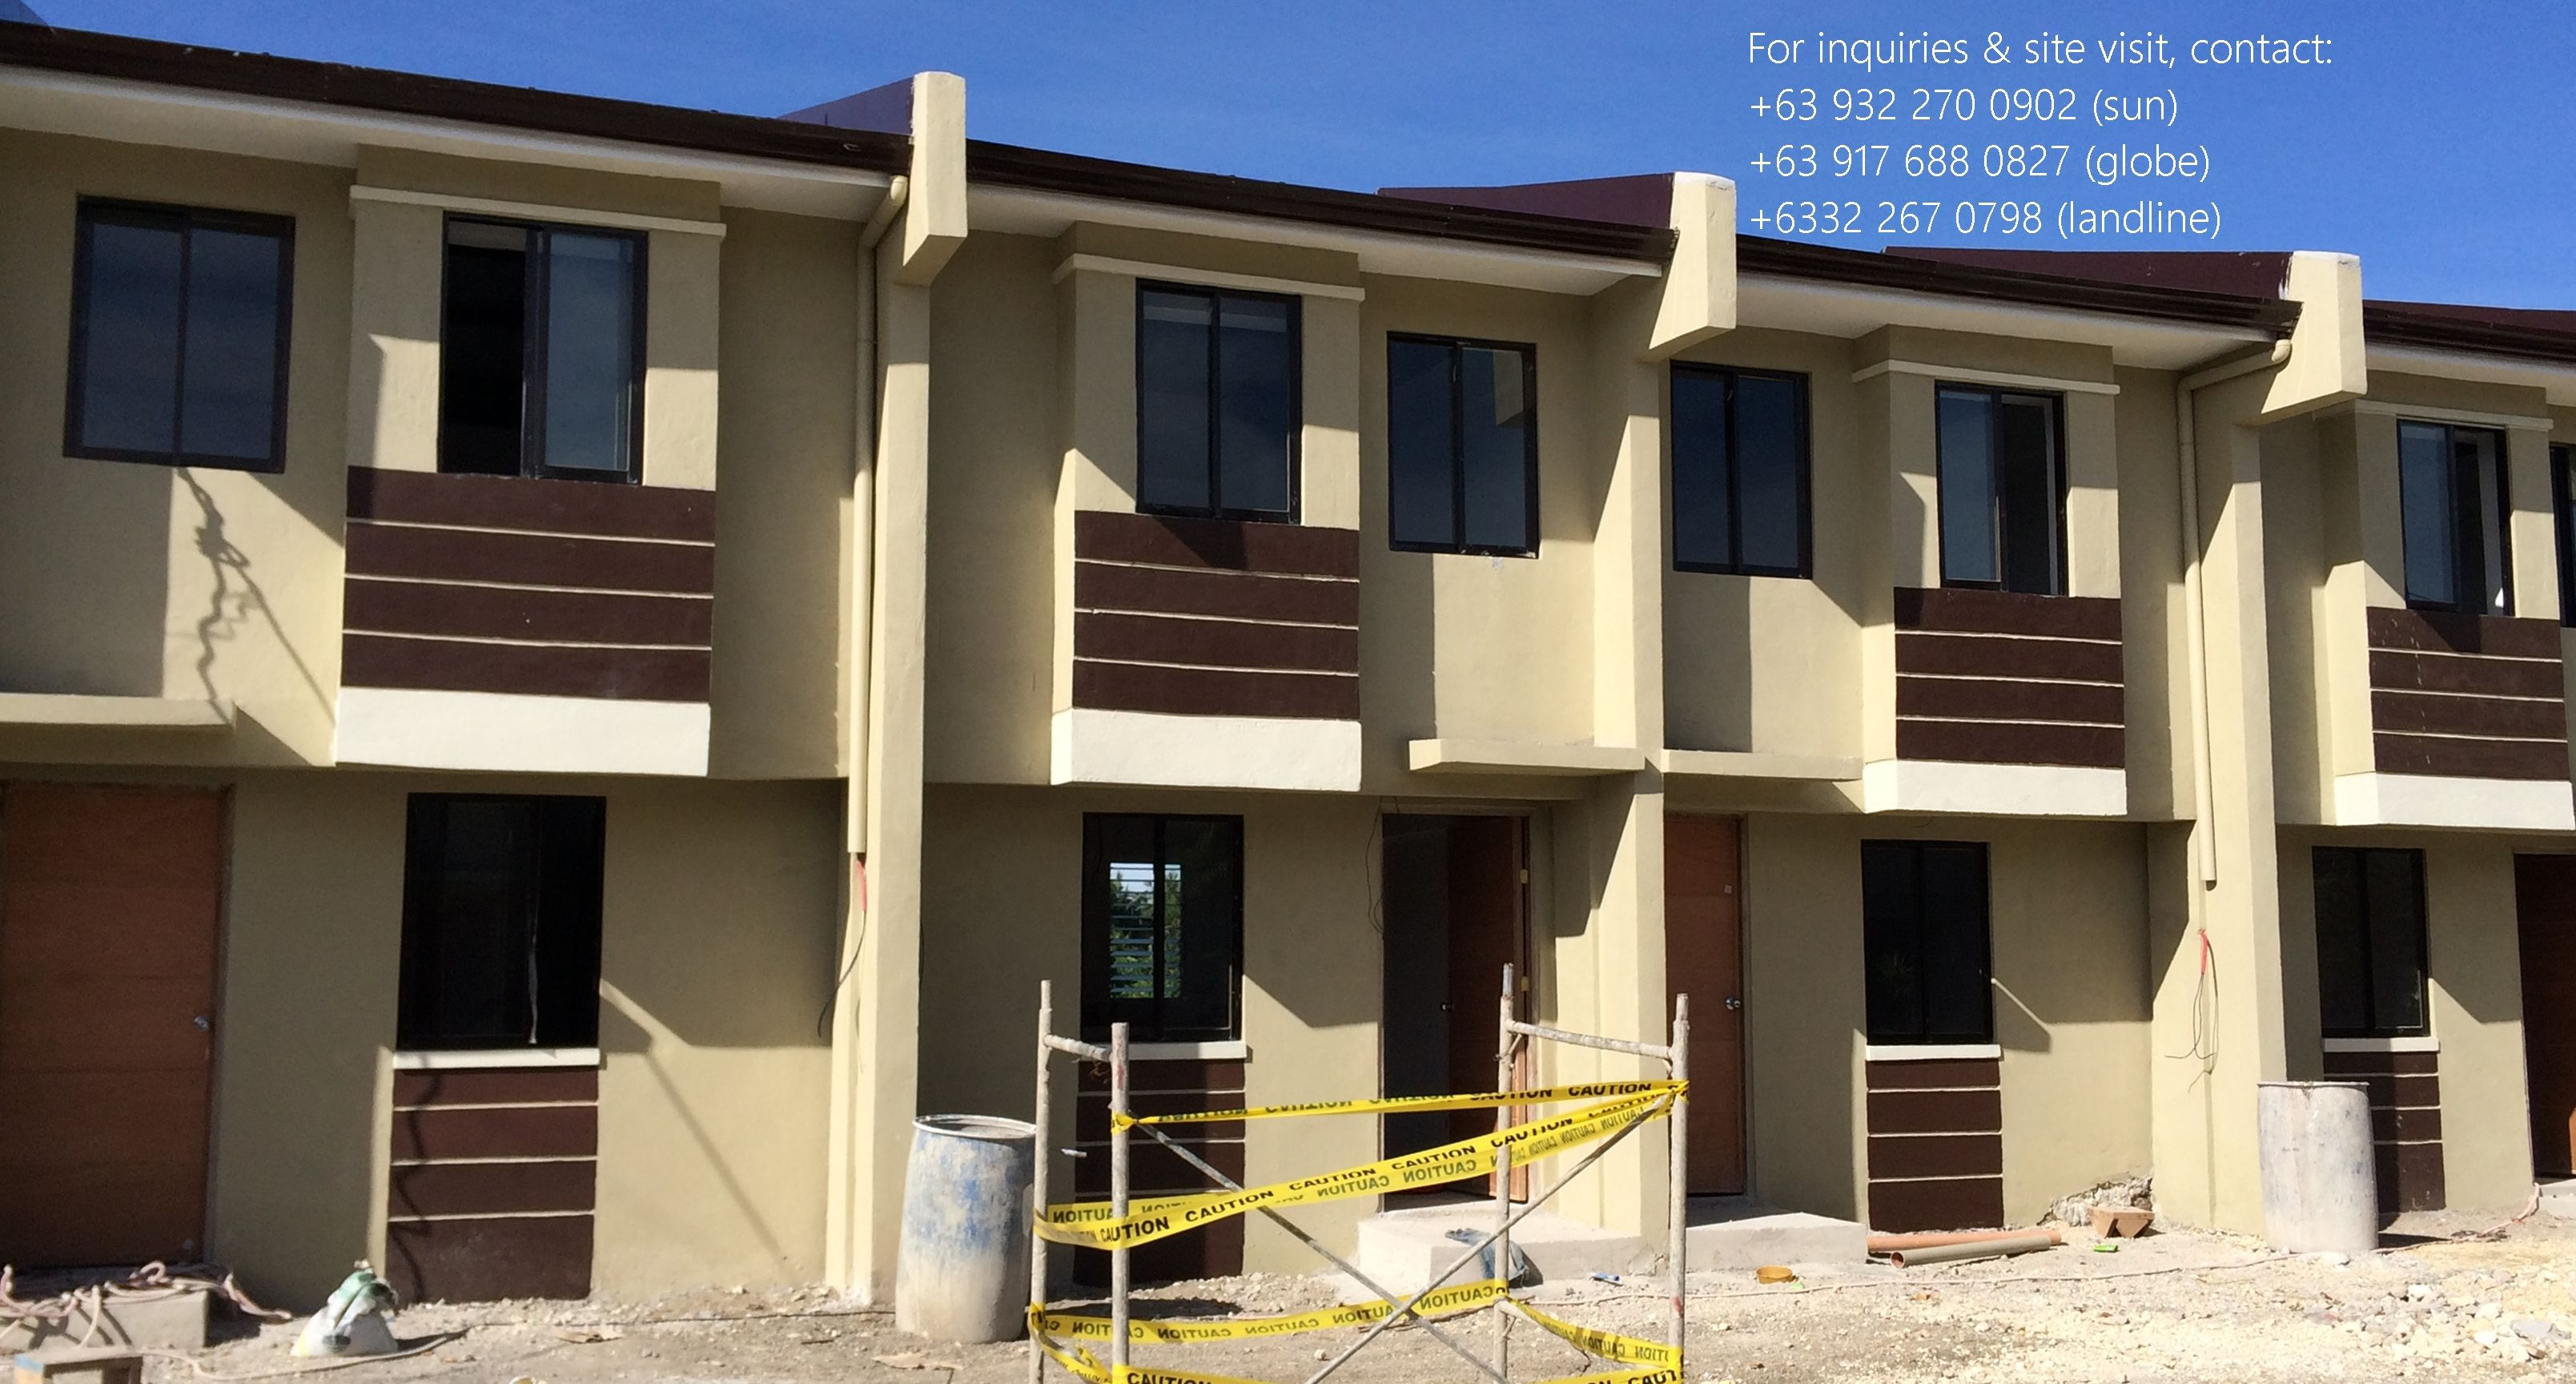 Affordable 2-storey townhouse expandable with carport ... on house with sunroom designs, house plans with porte cochere, house with terrace designs, house with pool designs, house designs for narrow lots, house with garages, house structure design, house with porch designs, art deco house designs, house with shake siding and stone, house structure parts, house plans with carports, luxury ranch home designs, house balcony designs, house kitchen designs, small house designs, house with covered patio designs, house with loft designs, house plans with porches, house with attic designs,